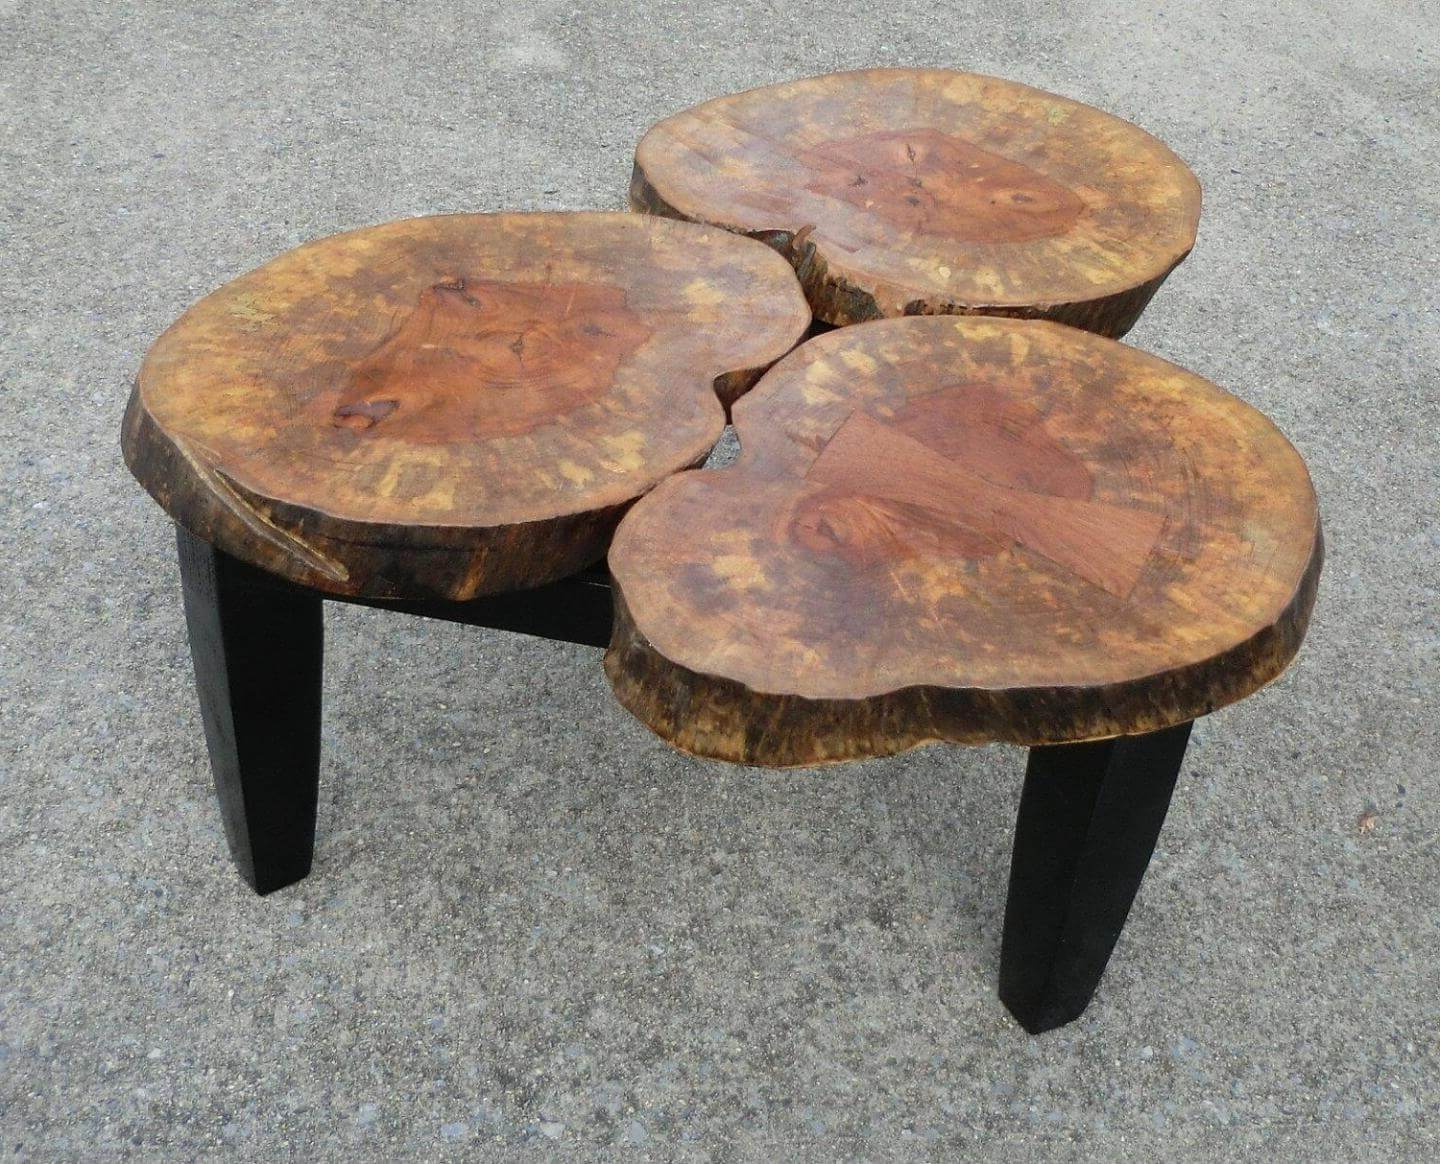 Oslo Burl Wood Veneer Coffee Tables Intended For Current Amish Tree Stump Coffee Tables : America Underwater Decor – Unique (View 15 of 20)